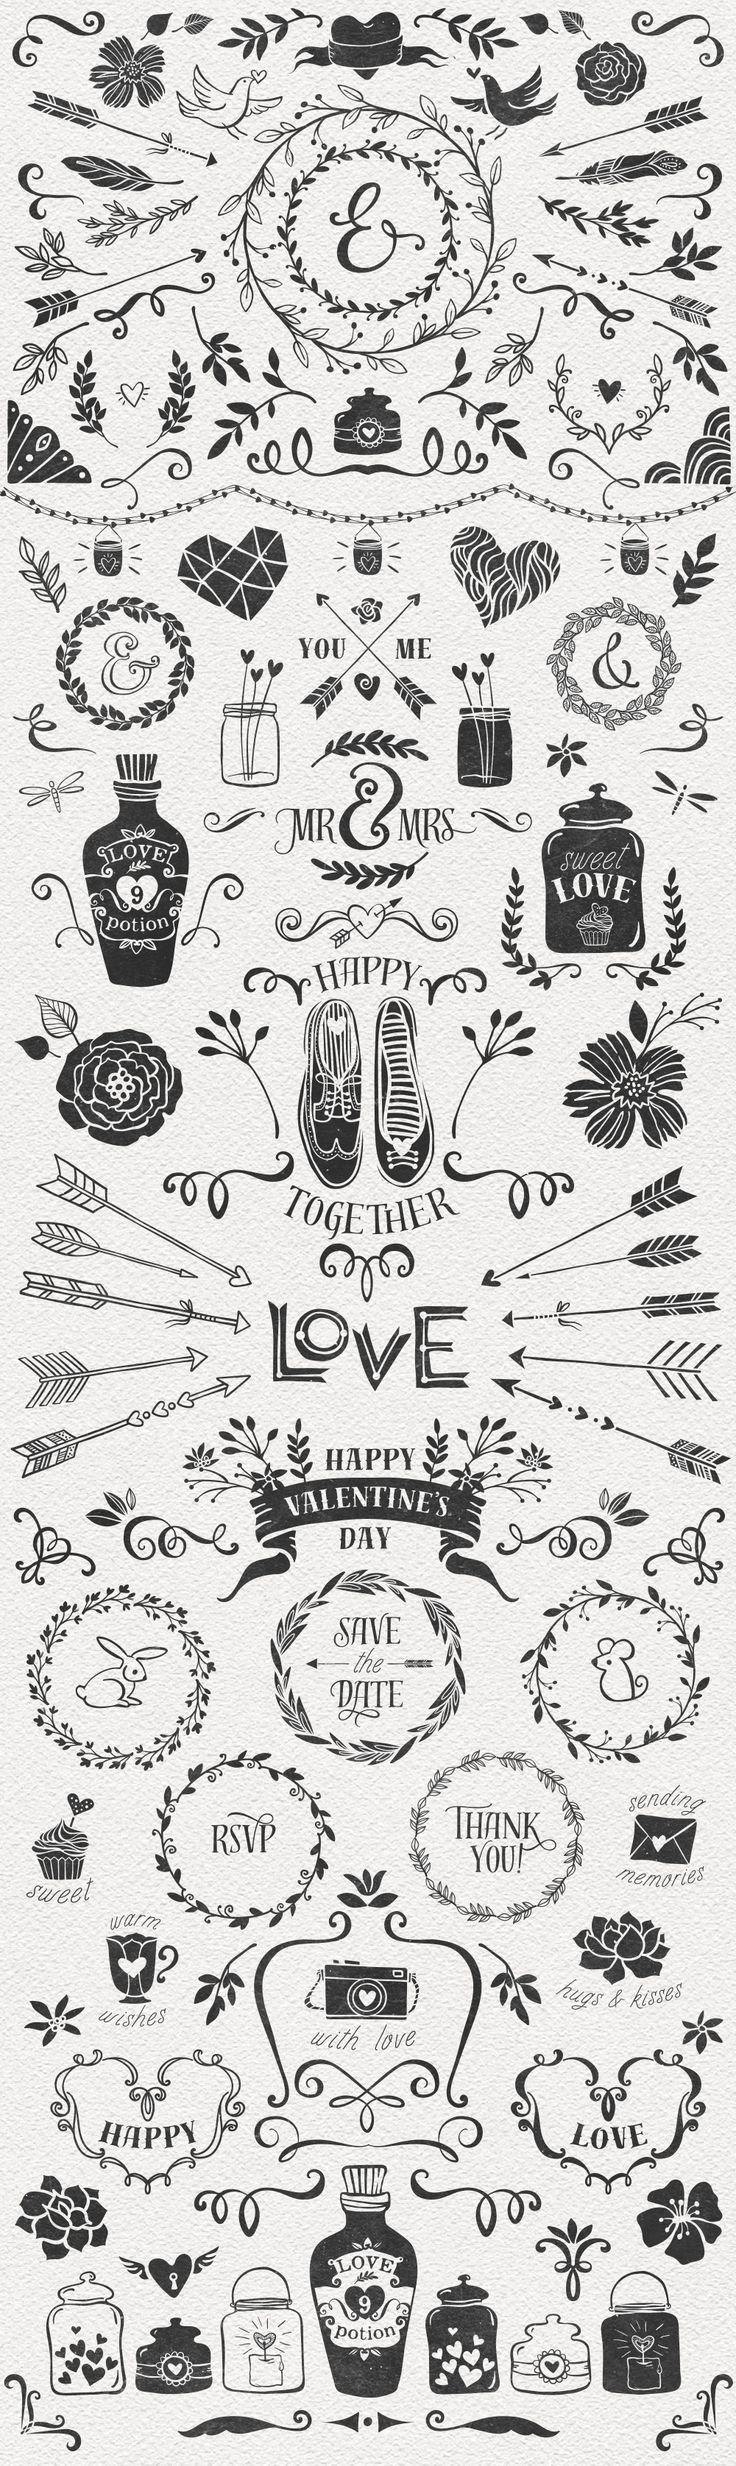 Hand Drawn Romantic Decoration Pack by kite-kit on @creativemarket